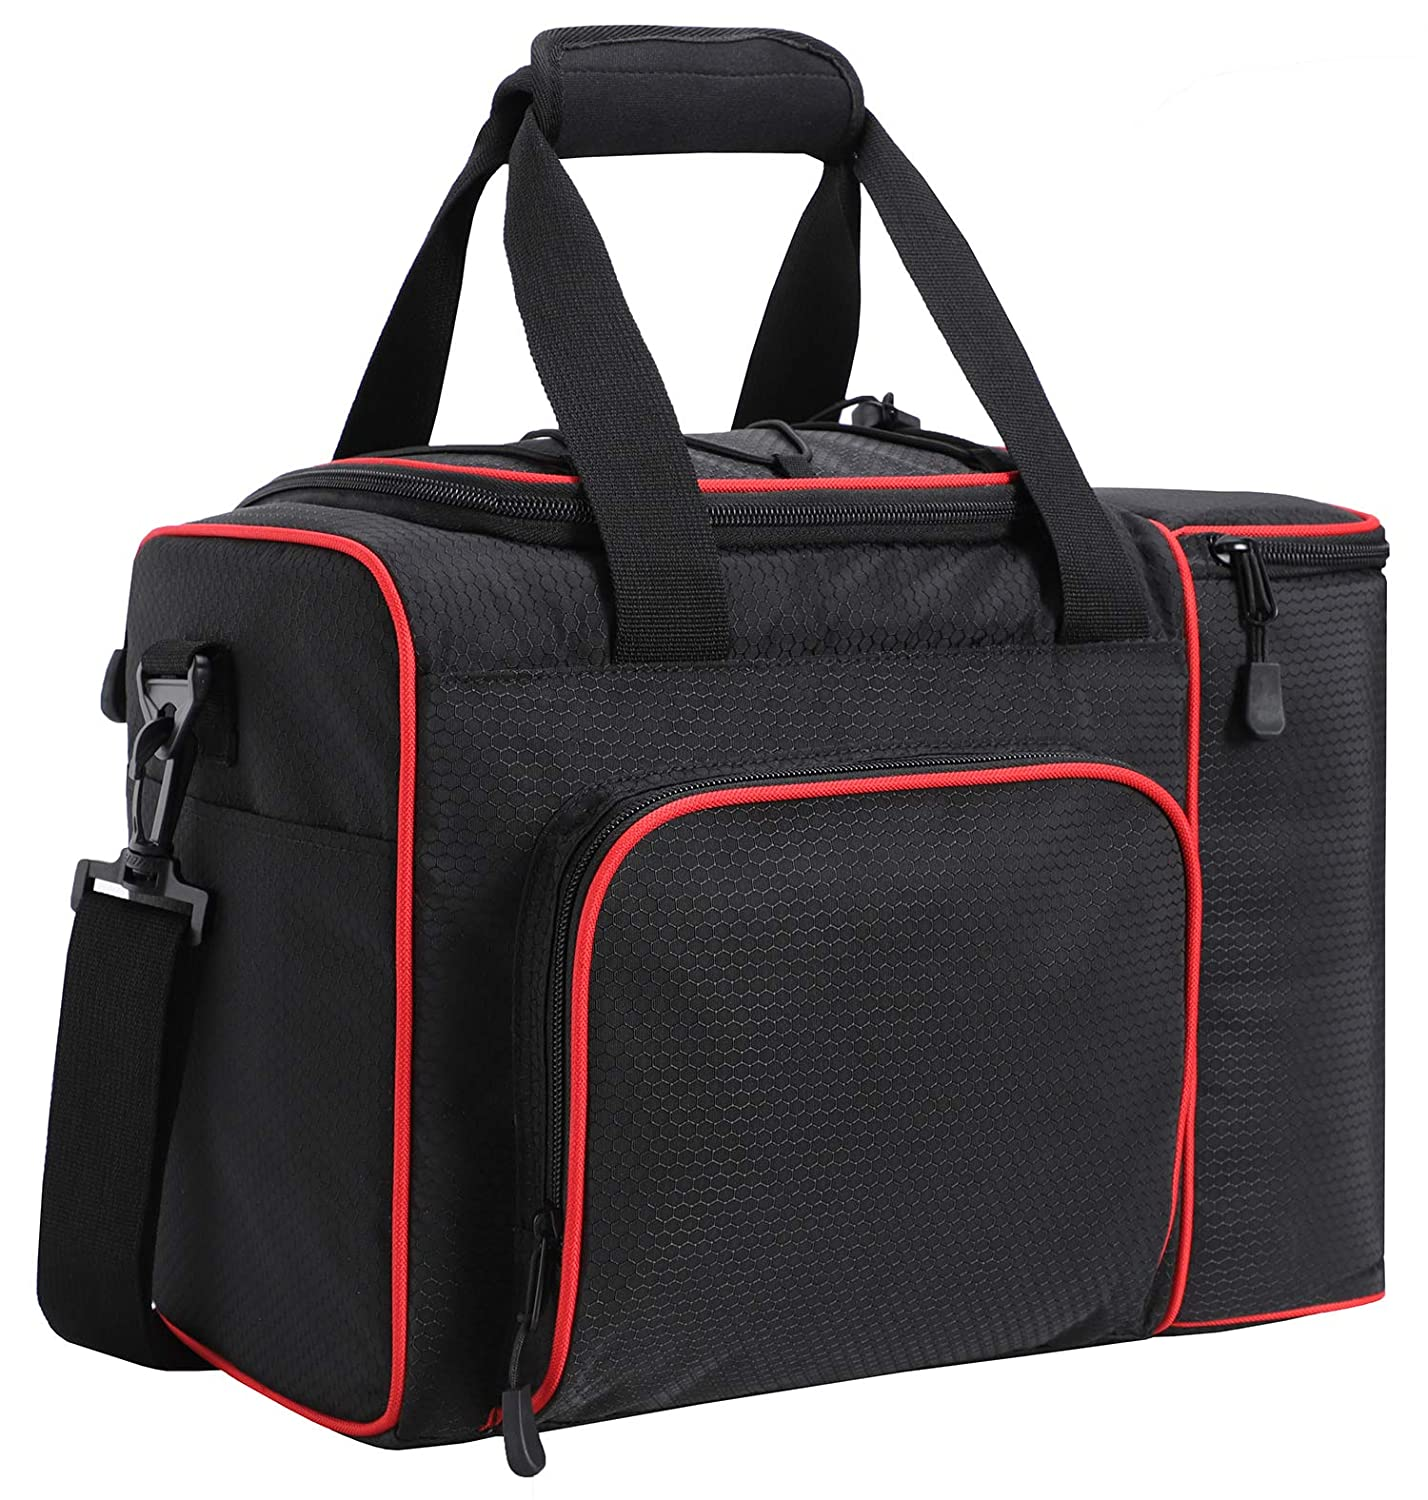 Travel 2 Decks Cooler Beach Grocery Black//Red Kayak MIER Large Adult Lunch Bag for Men Women Insulated Soft Cooler for Picnic Work